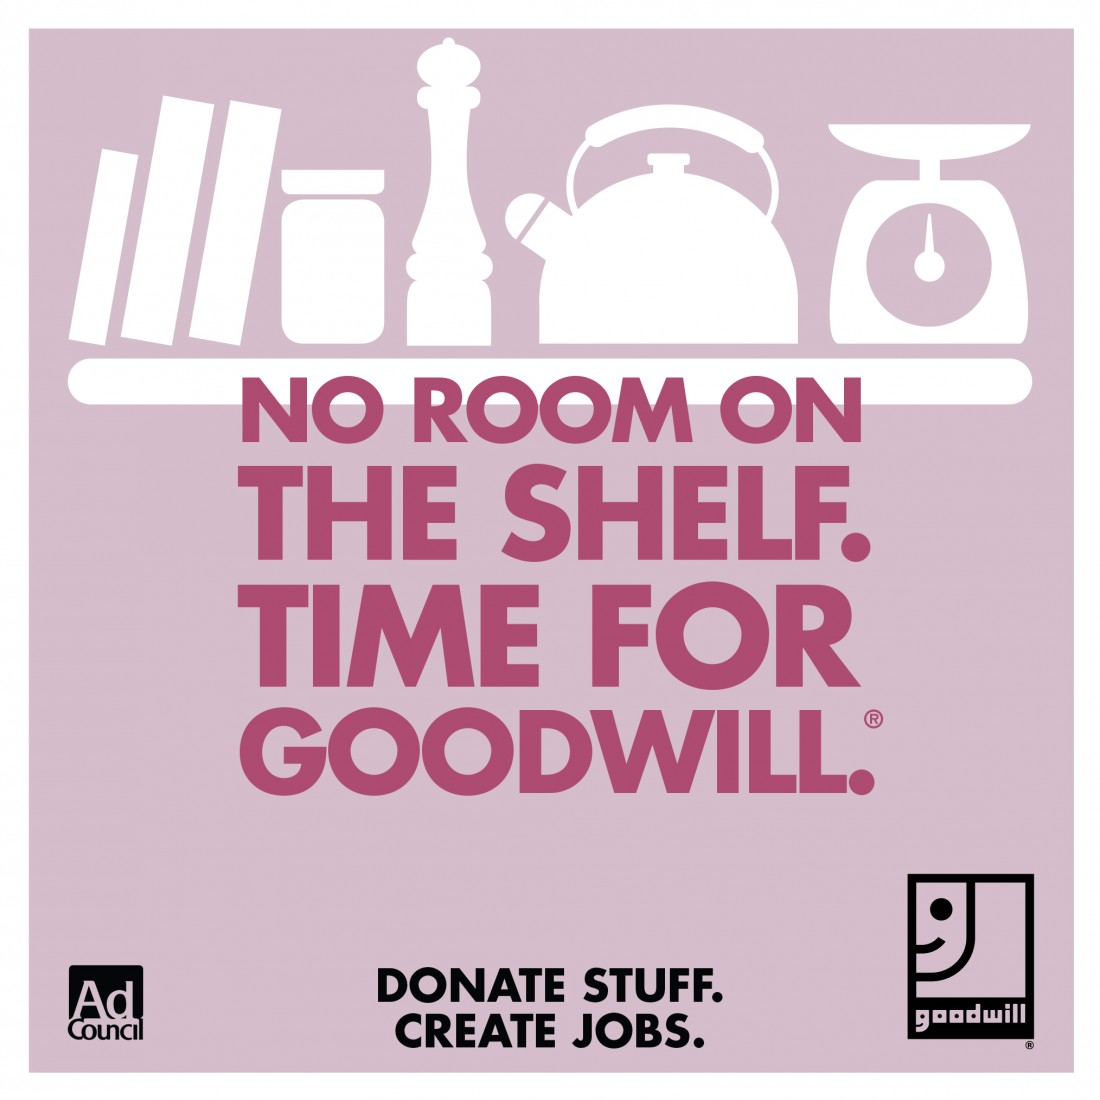 Got Books? Donate them to Goodwill.